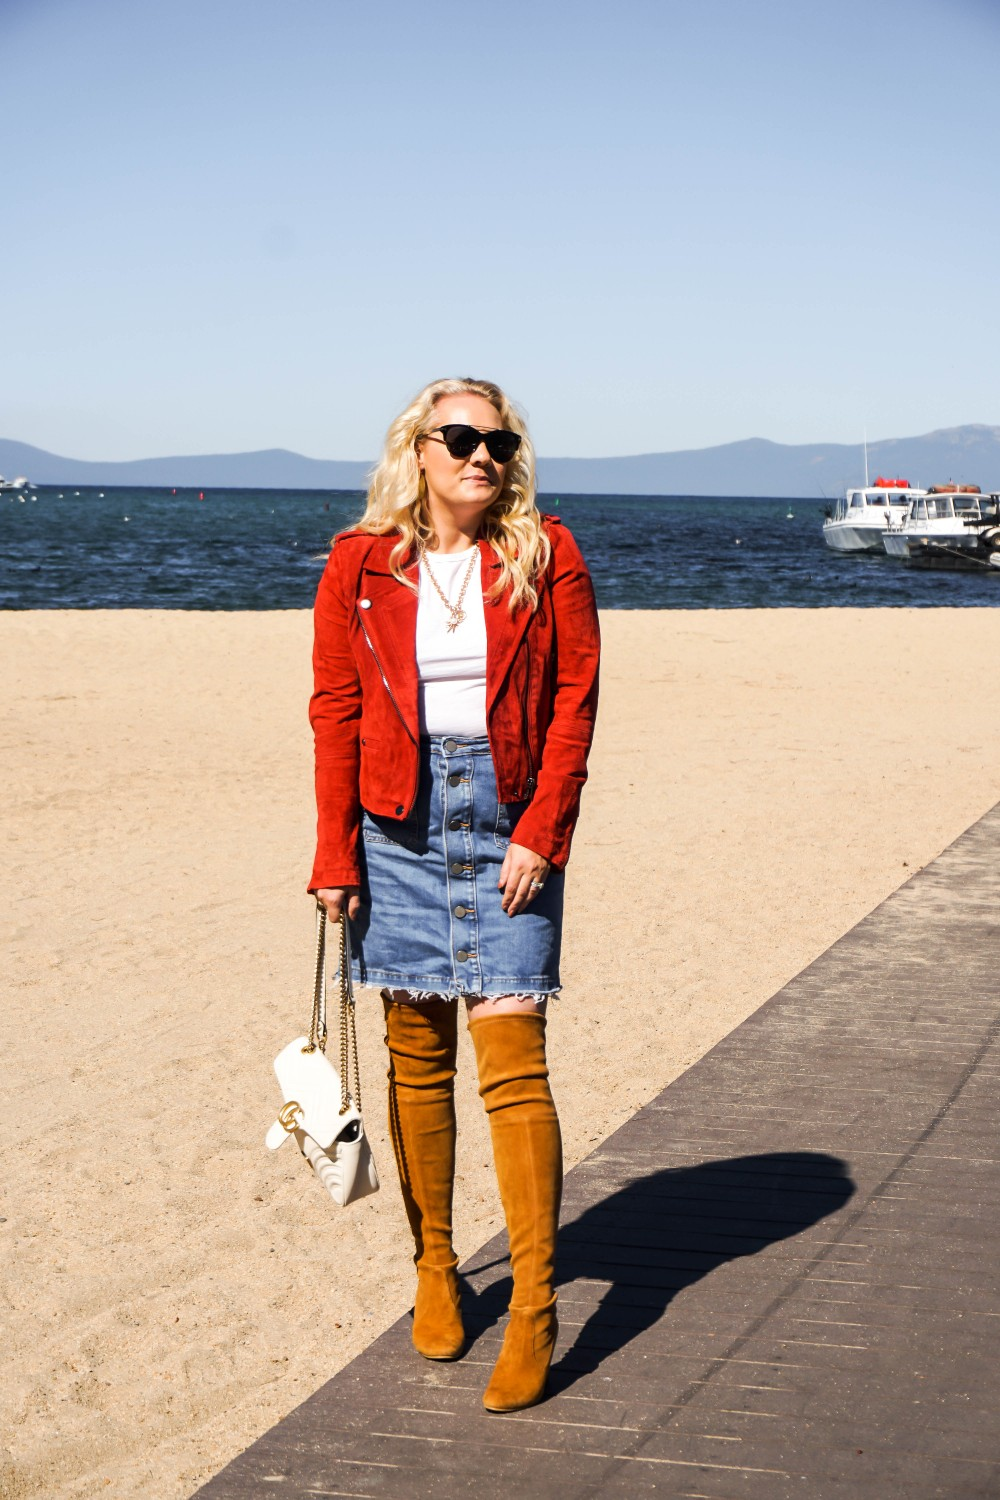 Styling a Denim Mini Skirt for Fall, Fall Outfit Inspiration, OTK Boots, Stuart Weitzman, Suede Moto Jacket, BlankNYC, Denim Mini Skirt, LOFT, Have Need Want